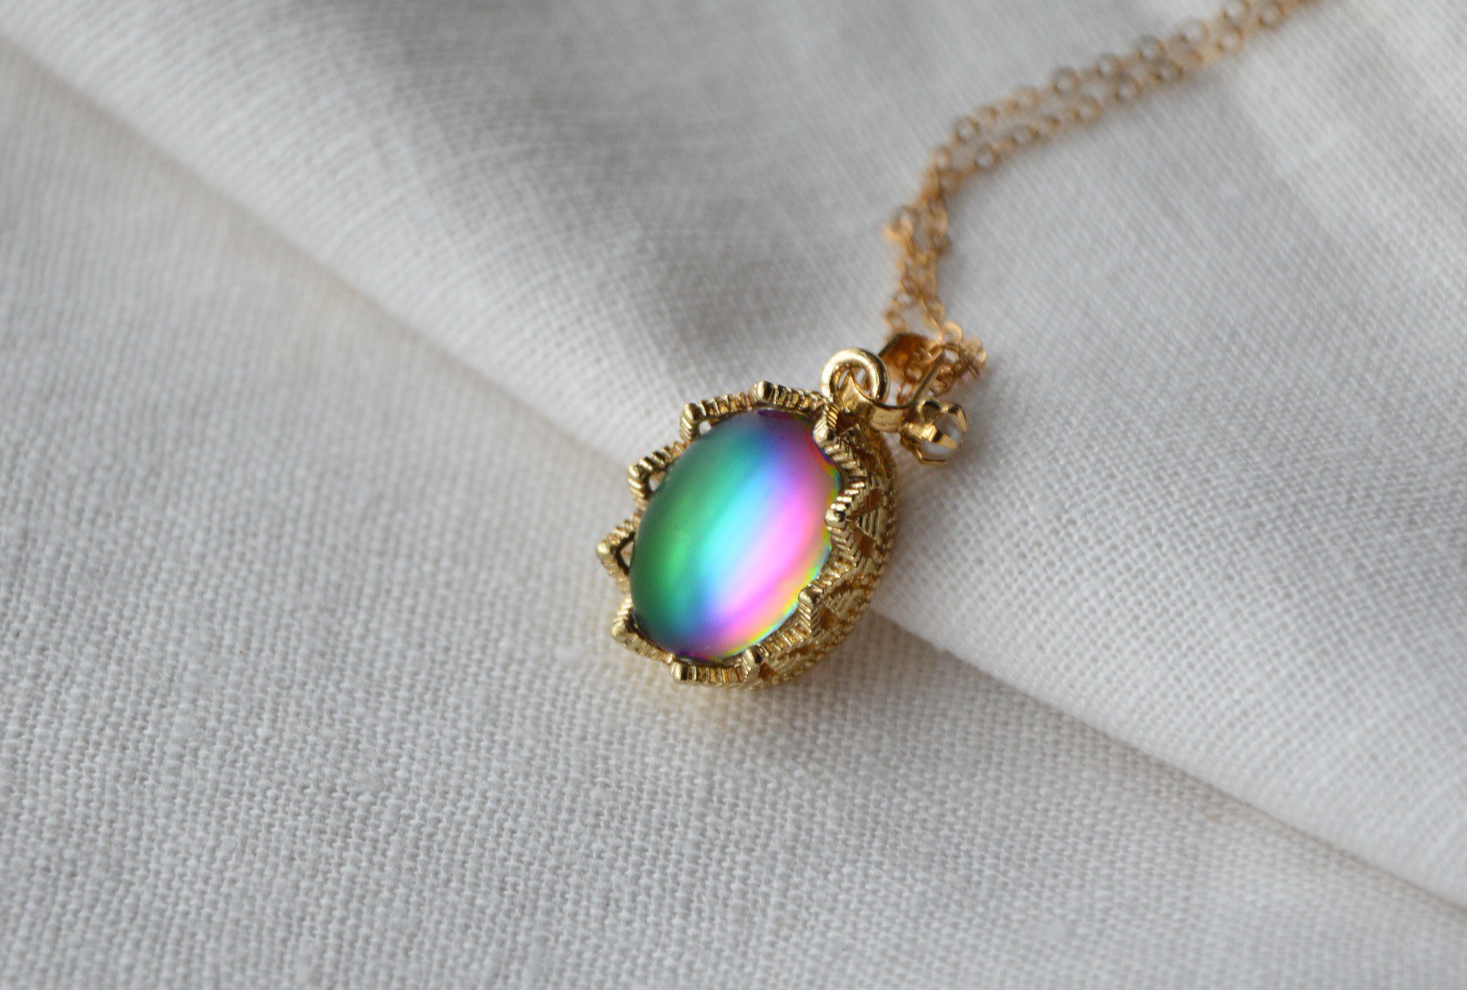 [ideal country] imported Vintage rainbow glass imitation gem frosted Necklace Pendant large and small